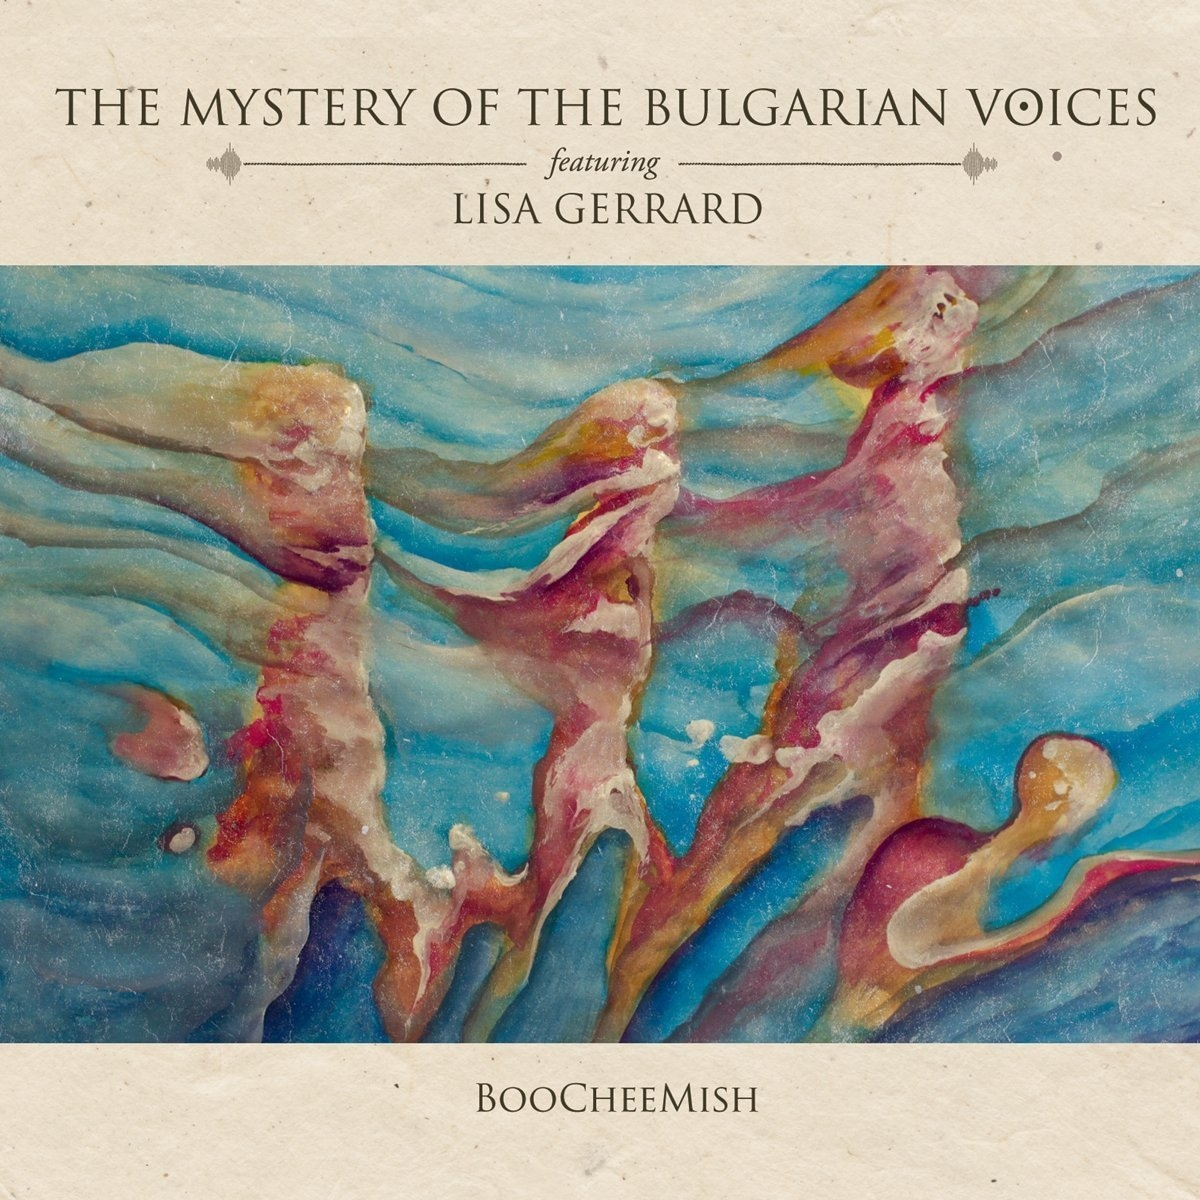 world 07 18 Bulgarian Voices